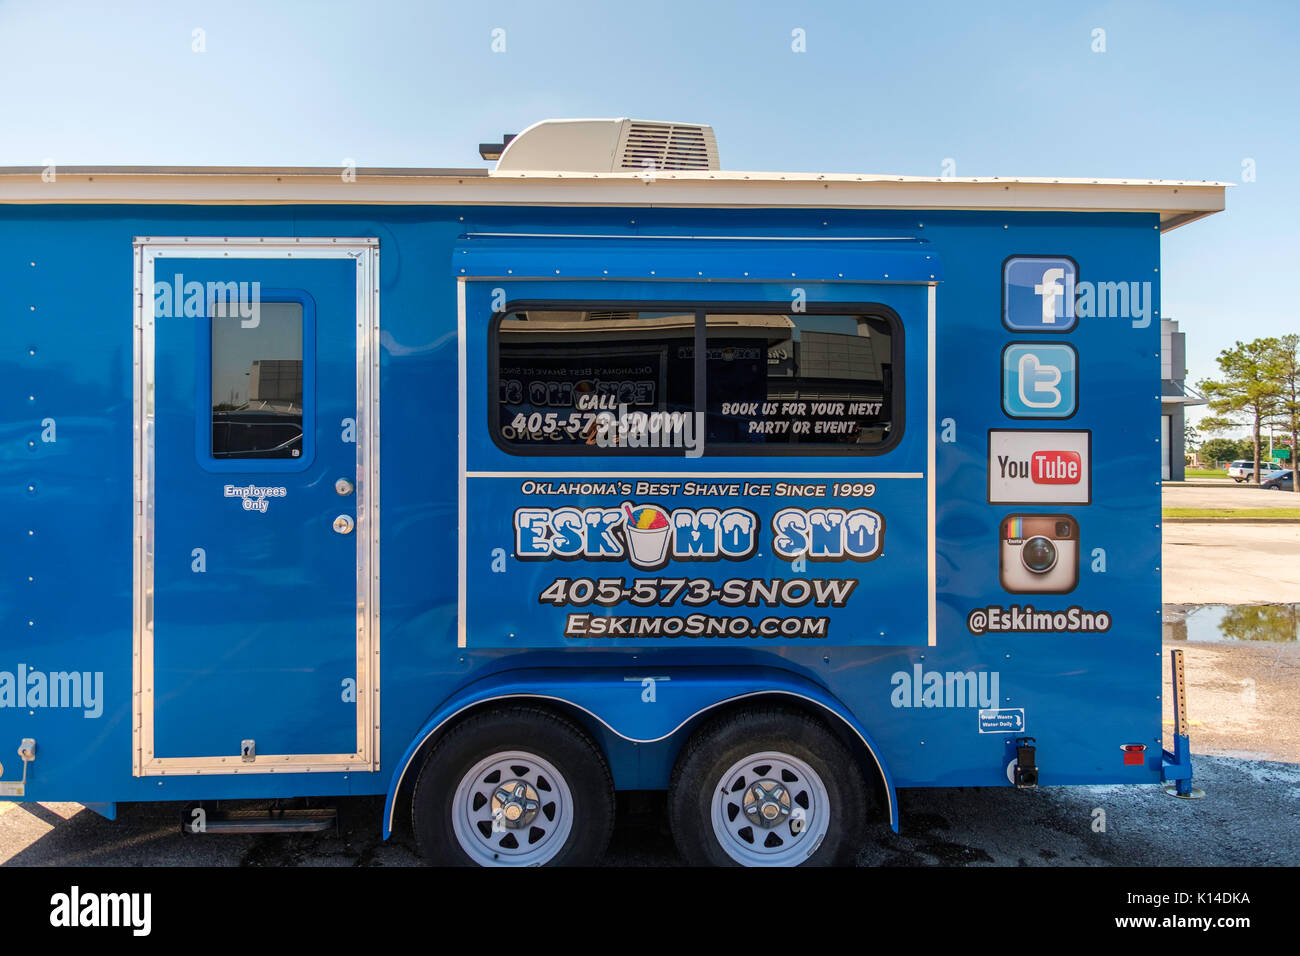 A Sno Cone trailer advertising Sno Cones,called EskimoSno. Parked in a parking lot in Norman, Oklahoma, USA. - Stock Image